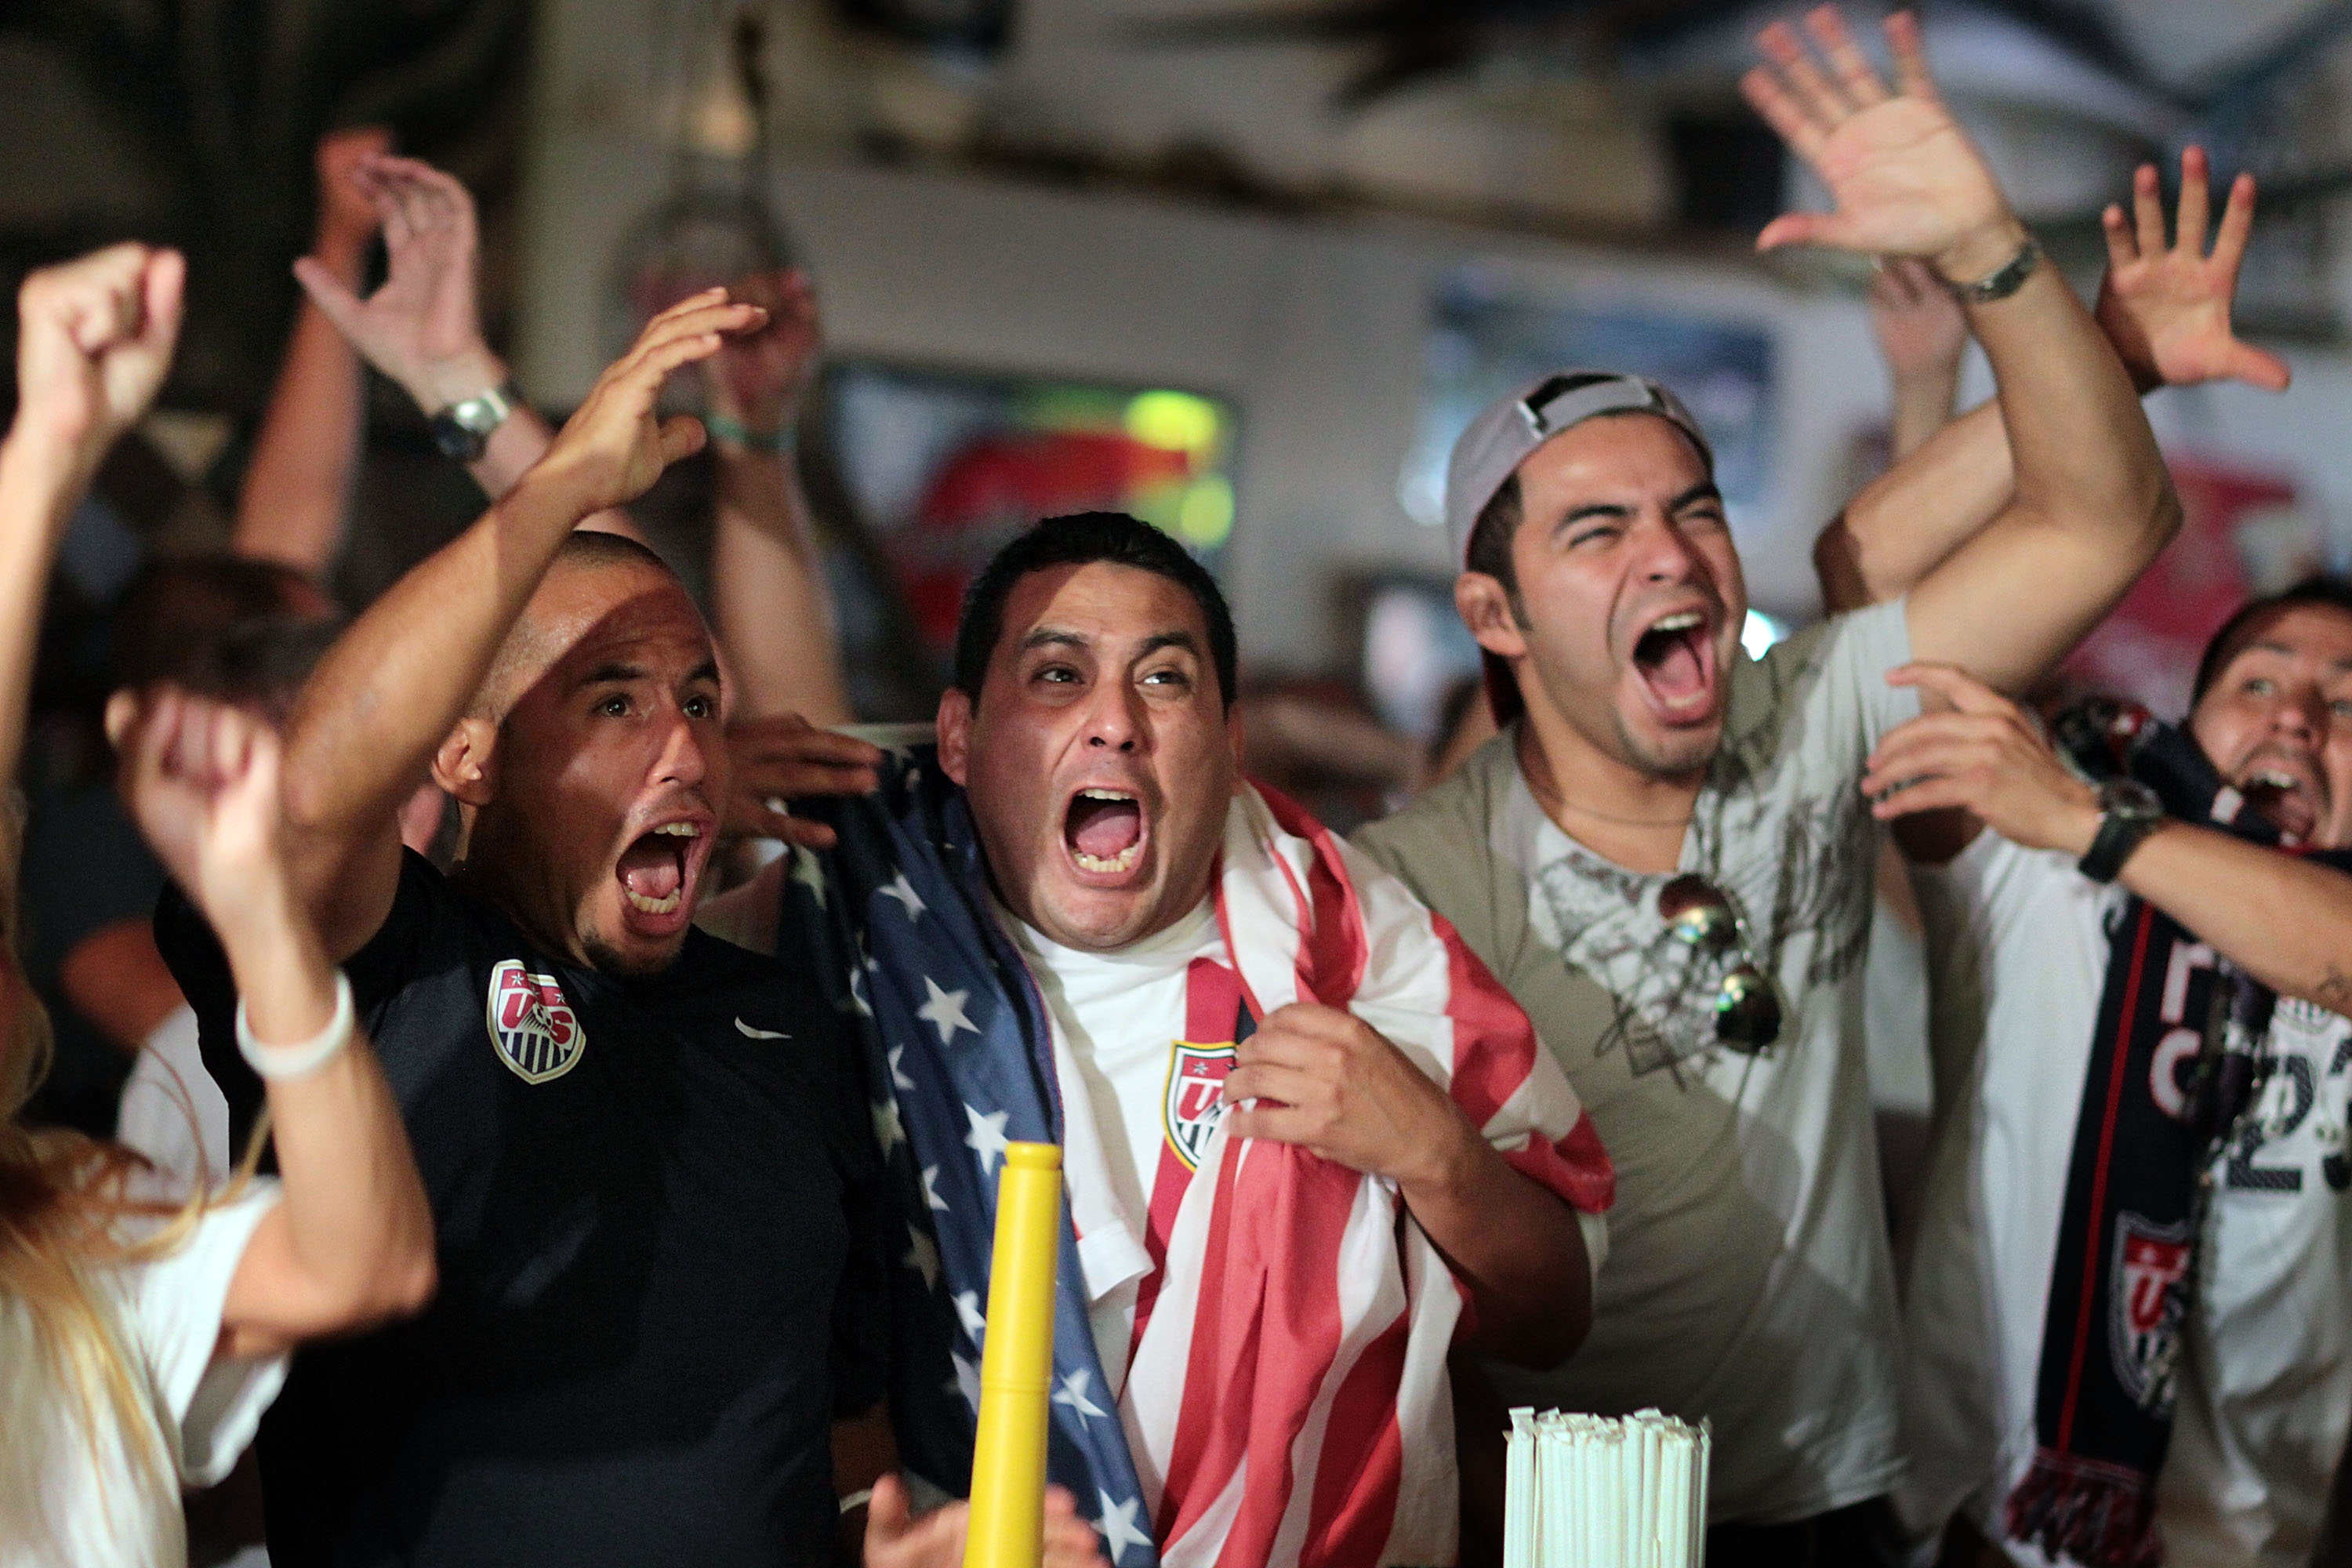 MIAMI - JUNE 23:  Freddy Hurtado (L) and Wilfredo Hurtado (C) and others celebrate the winning goal for the USA soccer team while watching the 2010 FIFA World Cup South Africa Group C match between USA and Algeria on television at Churchill's pub on June